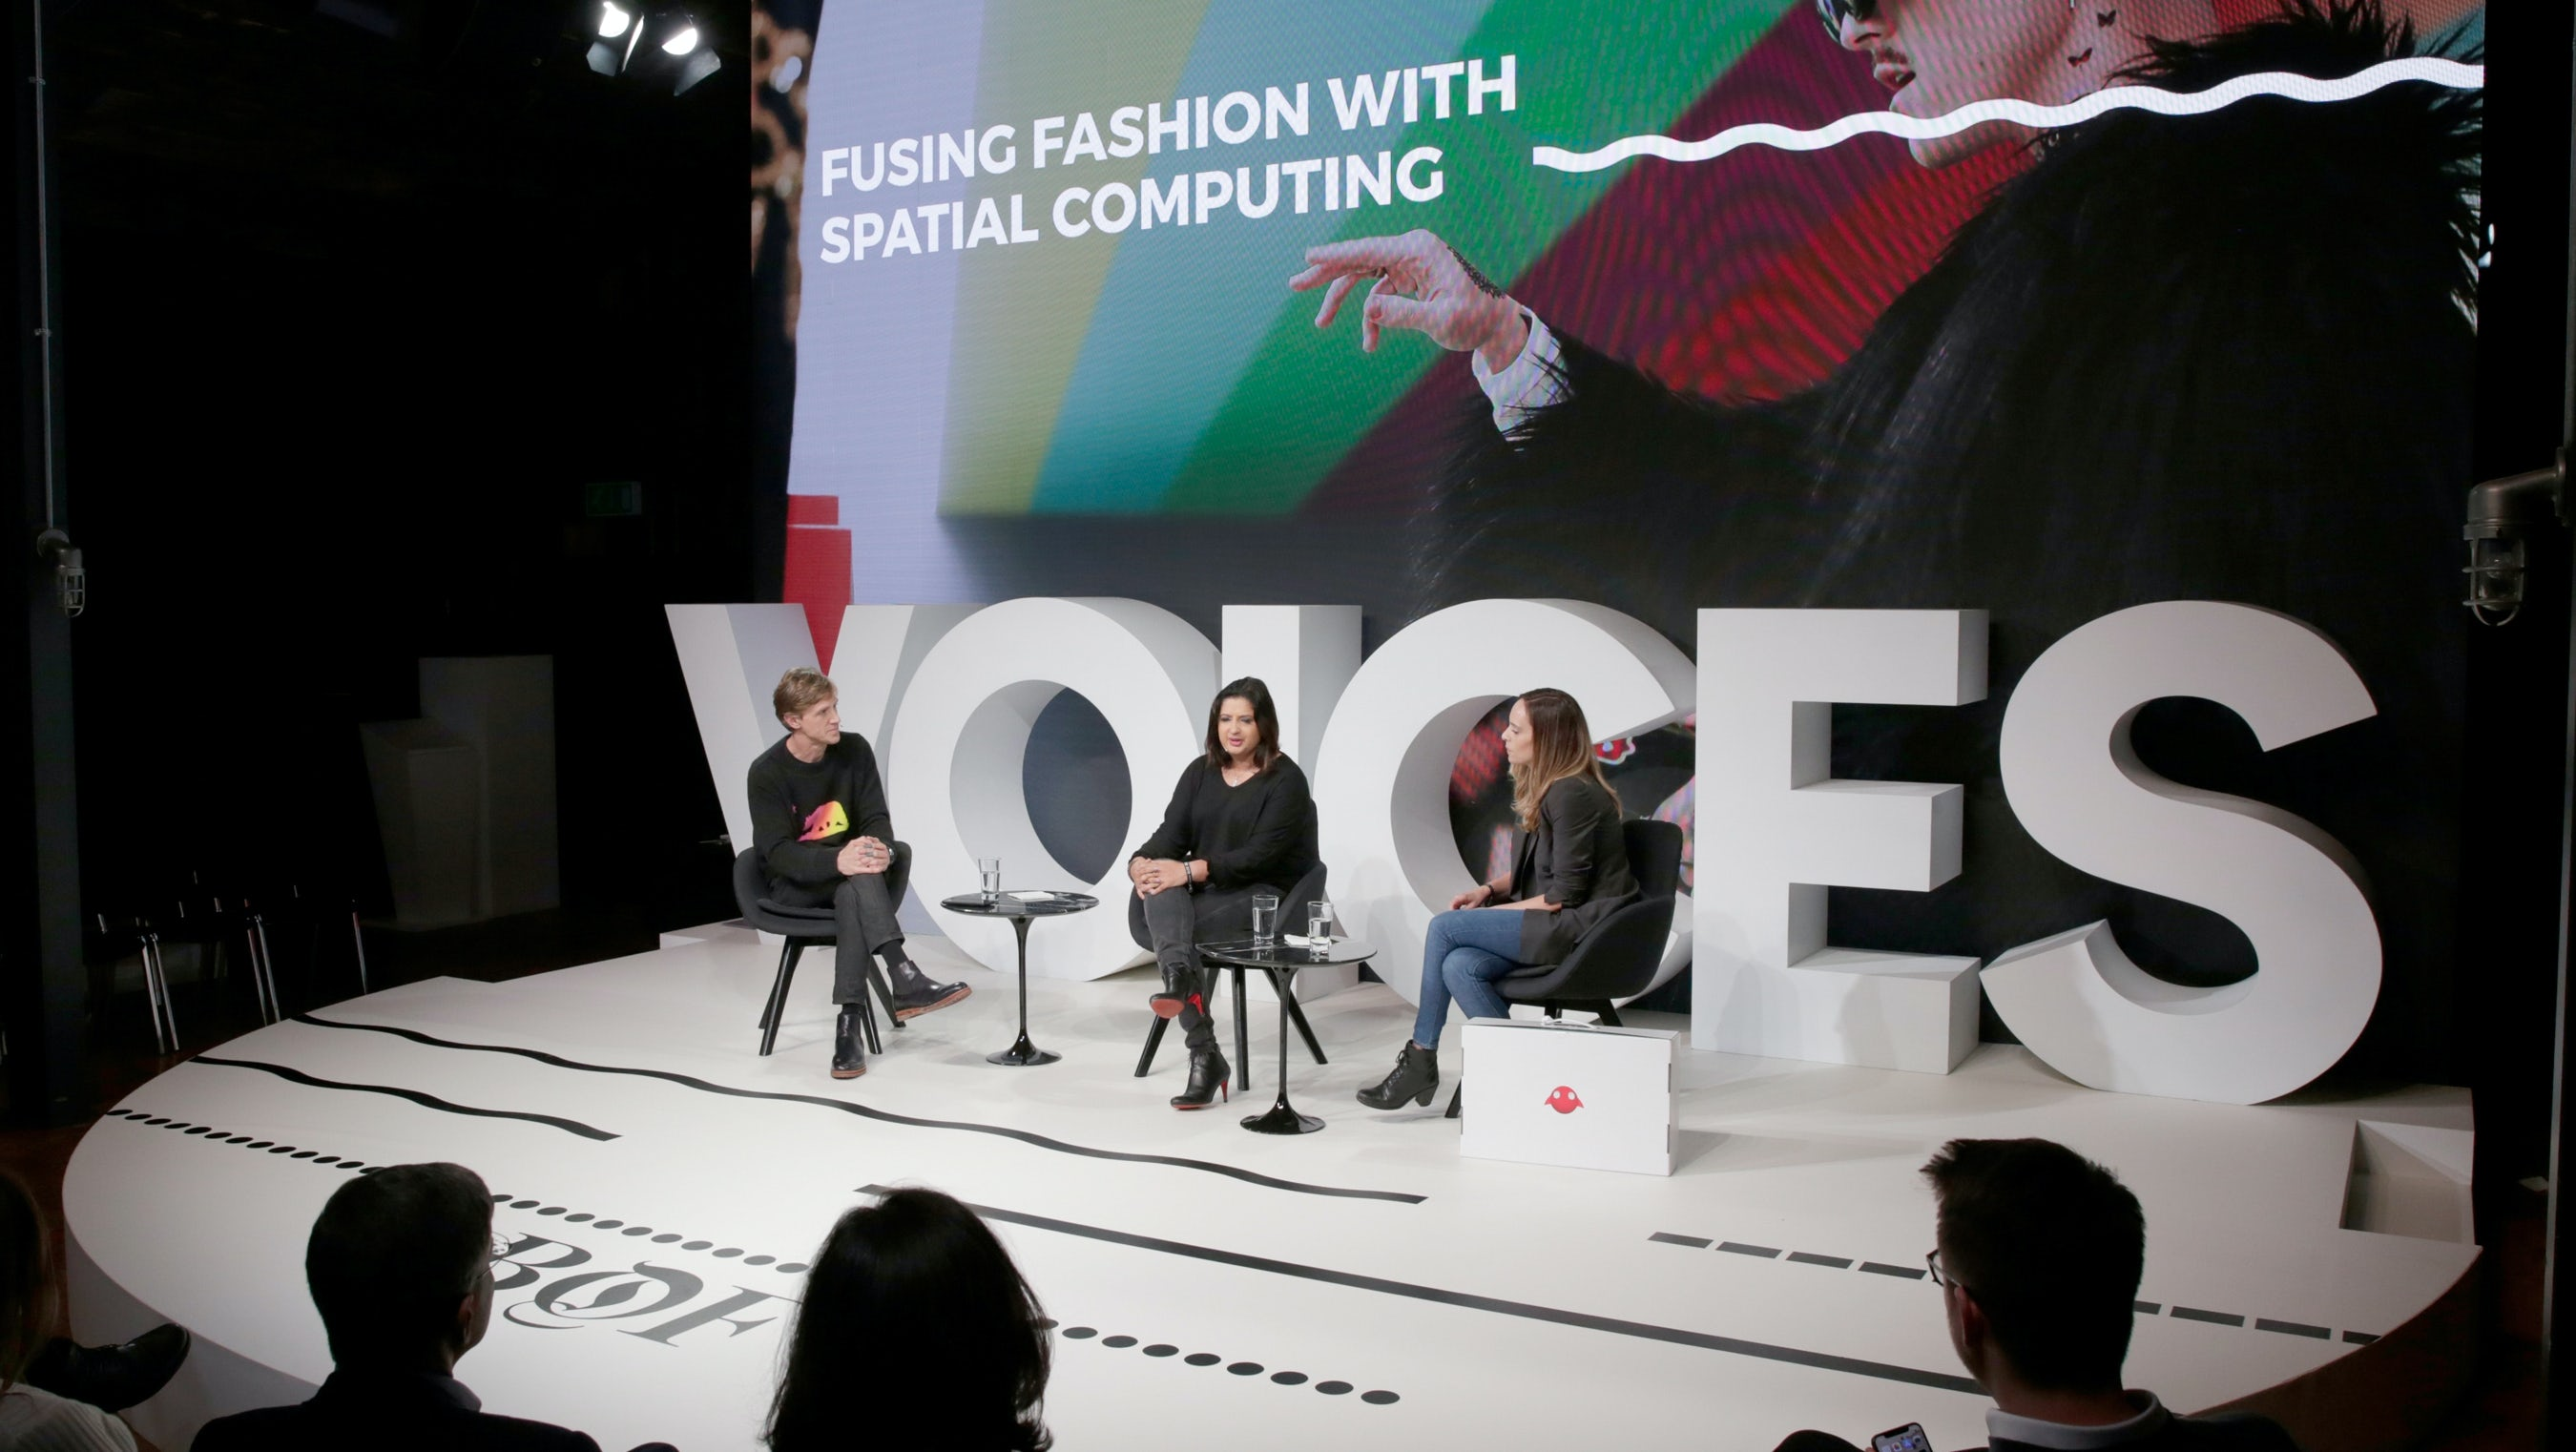 Left to right: Ian Rogers, Rachna Bhasin and Rebecca Barkin | Source: Getty Images for The Business of Fashion